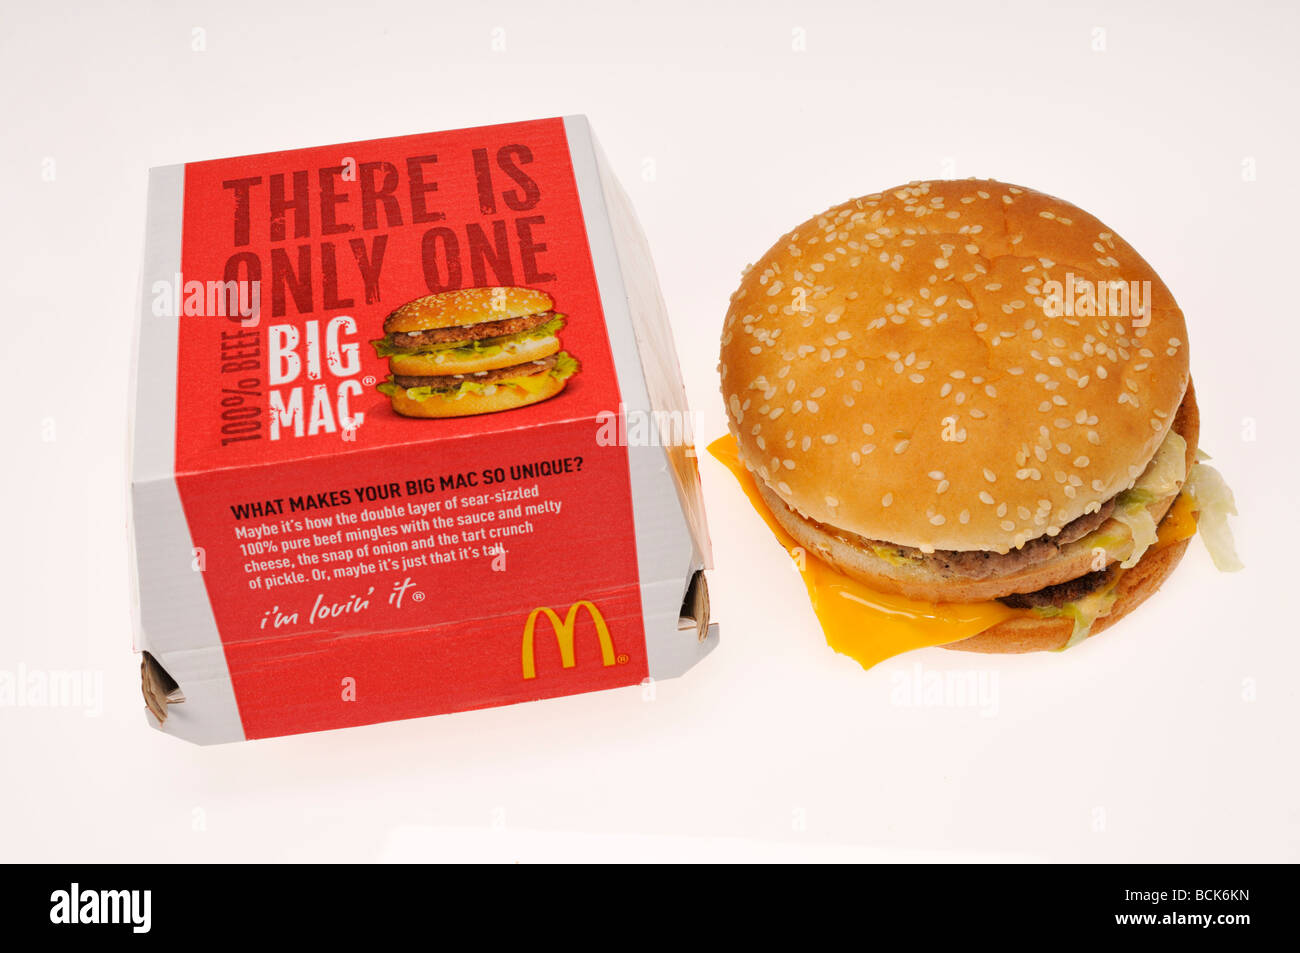 Mcdonalds Big Mac fast food sandwich with container on white background. - Stock Image